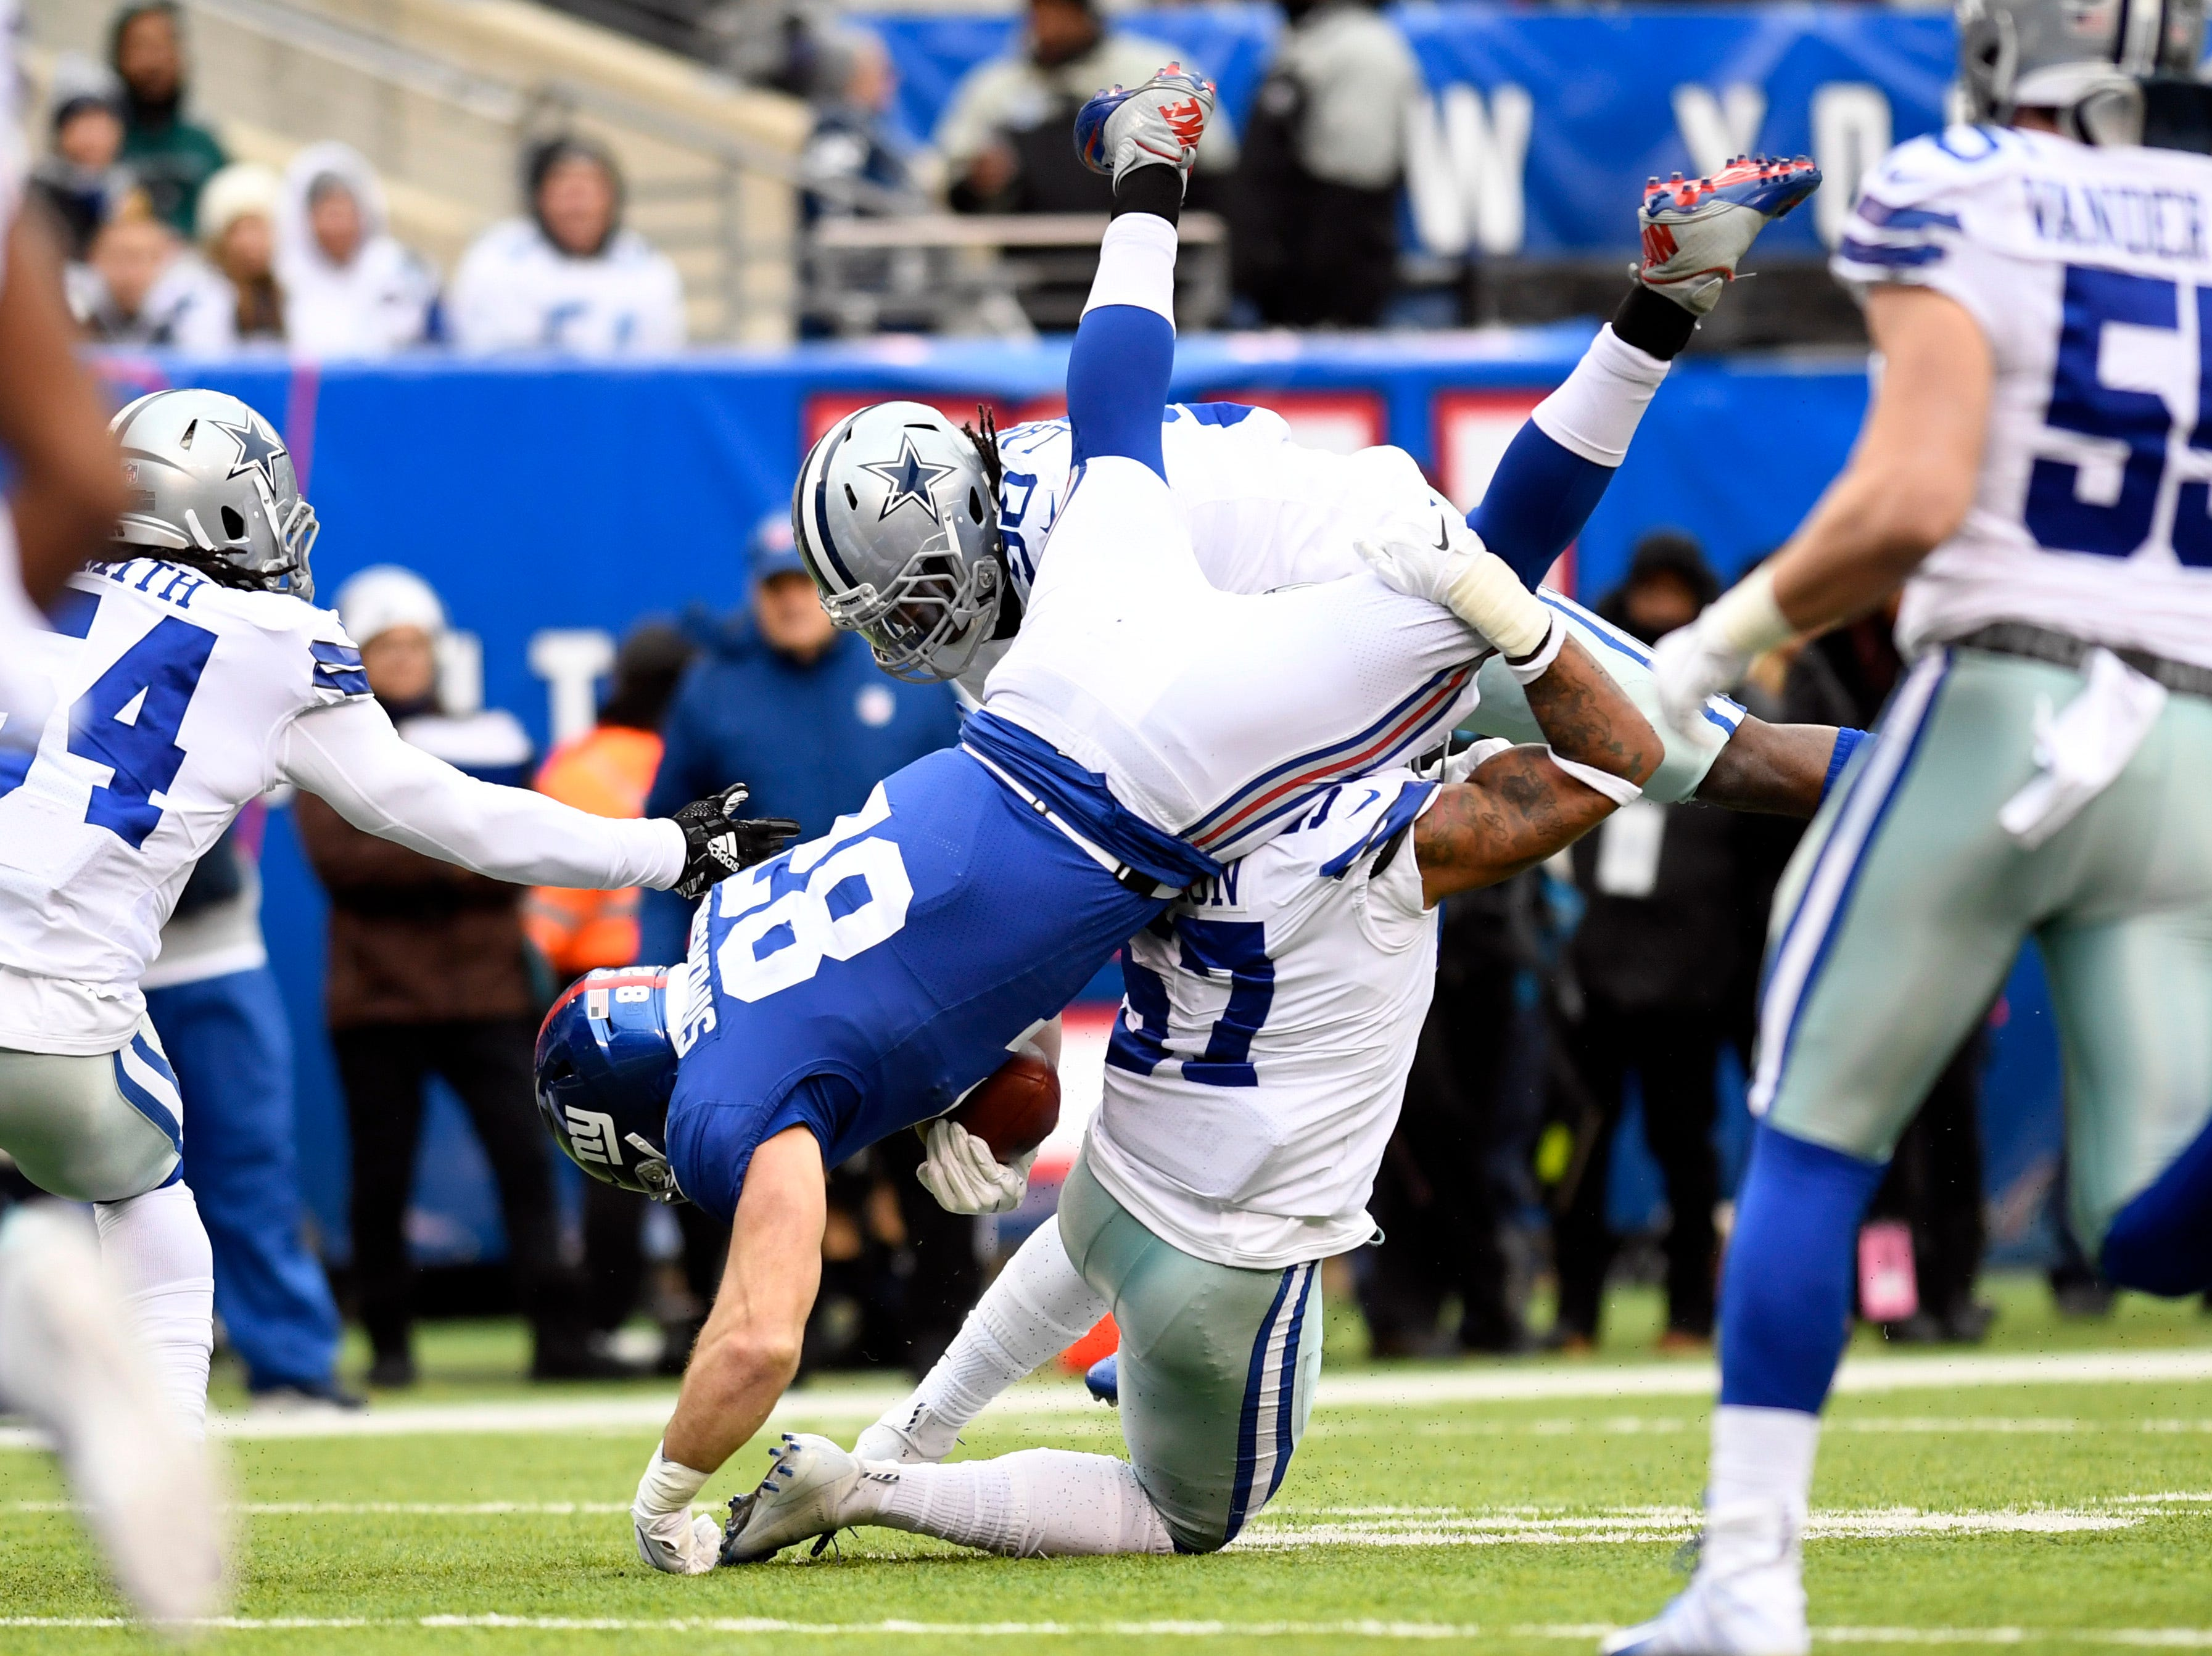 New York Giants tight end Scott Simonson (82) flips over Dallas Cowboys outside linebacker Damien Wilson (57) in the first half. The New York Giants face the Dallas Cowboys in the last regular season game on Sunday, Dec. 30, 2018, in East Rutherford.